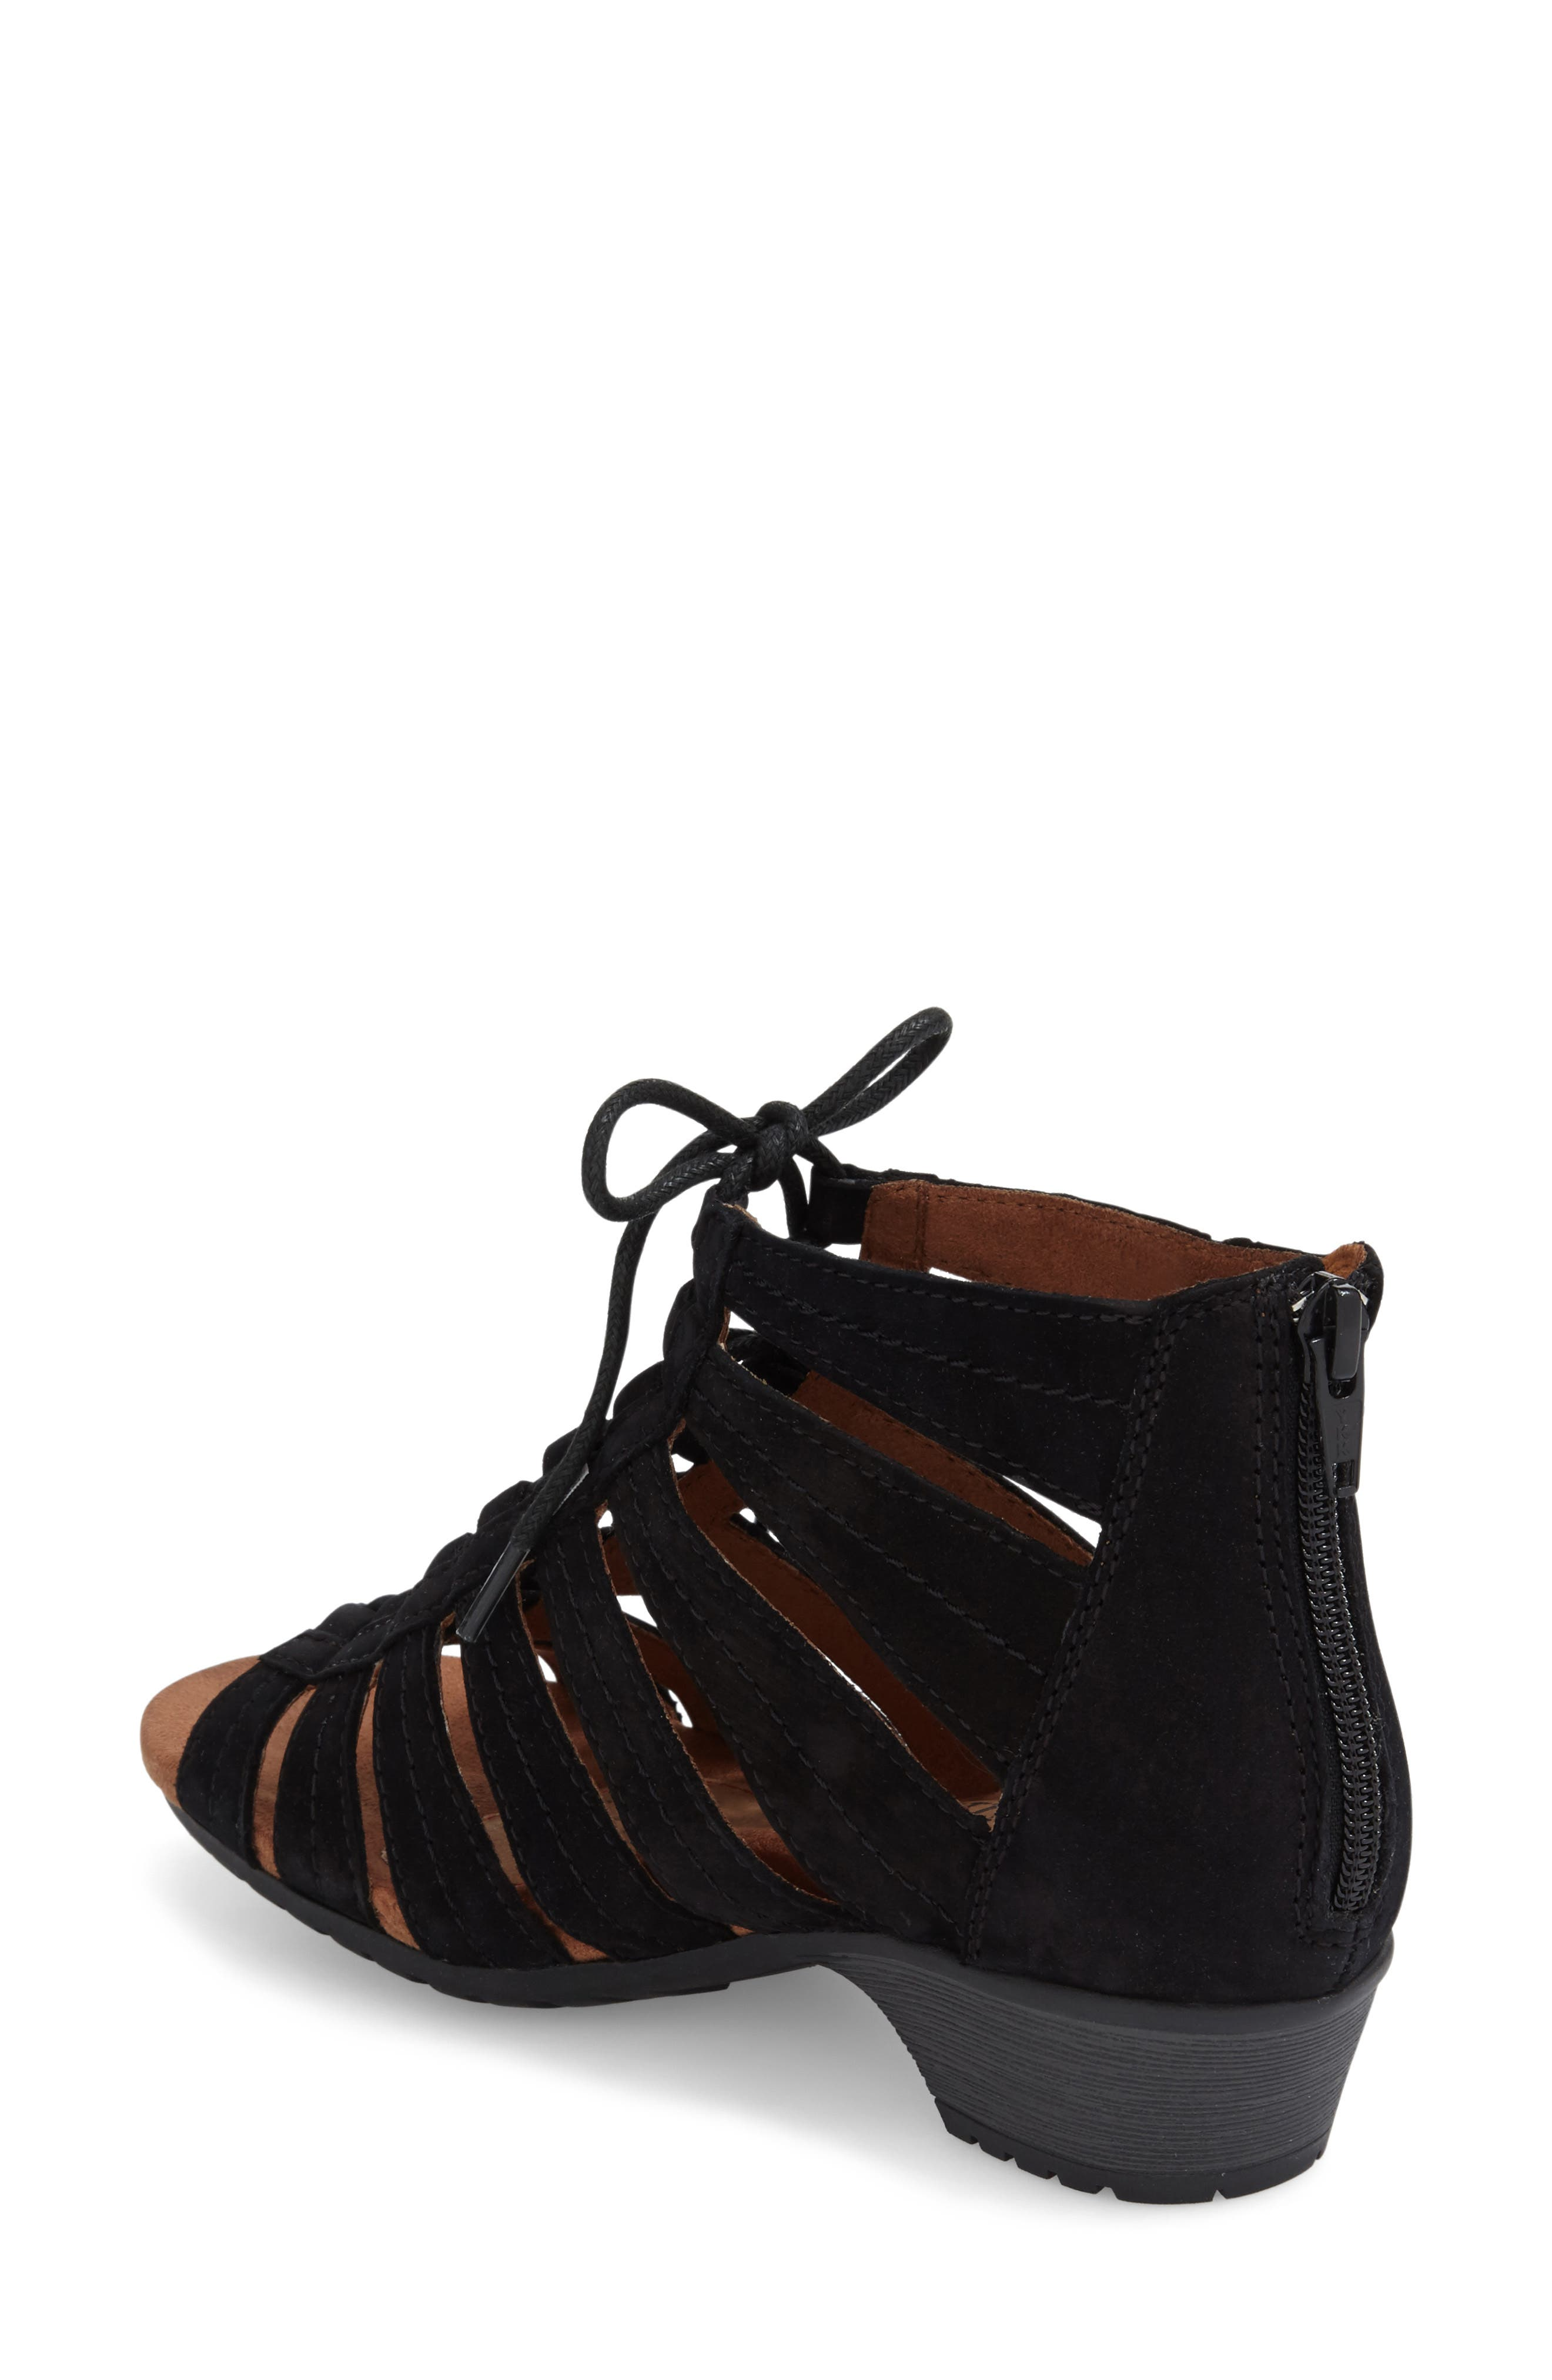 'Gabby' Lace-Up Sandal,                             Alternate thumbnail 27, color,